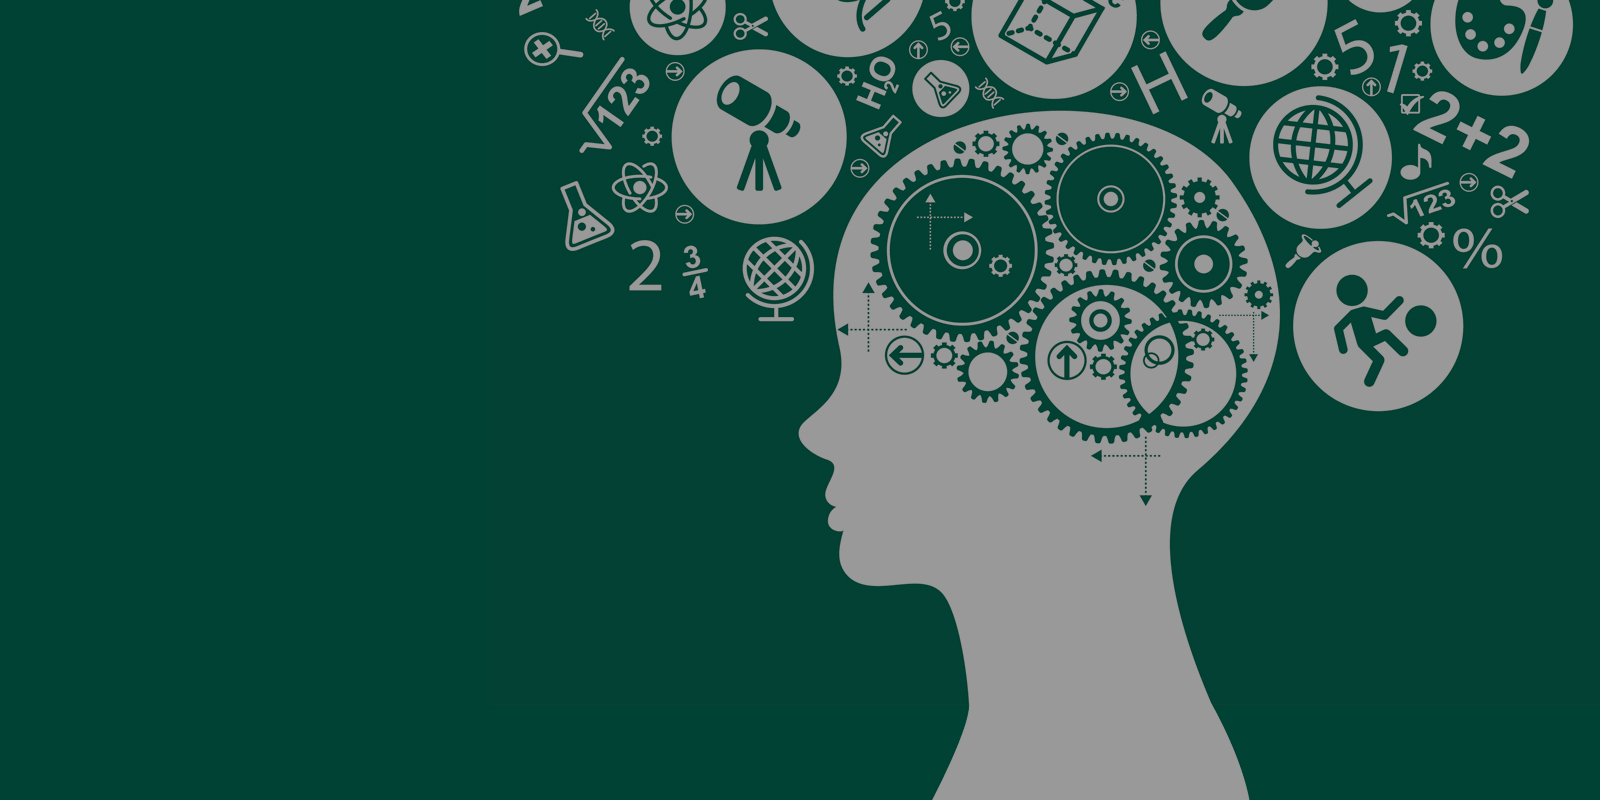 Behavioral Economics: Taking A More Human Approach In Execution